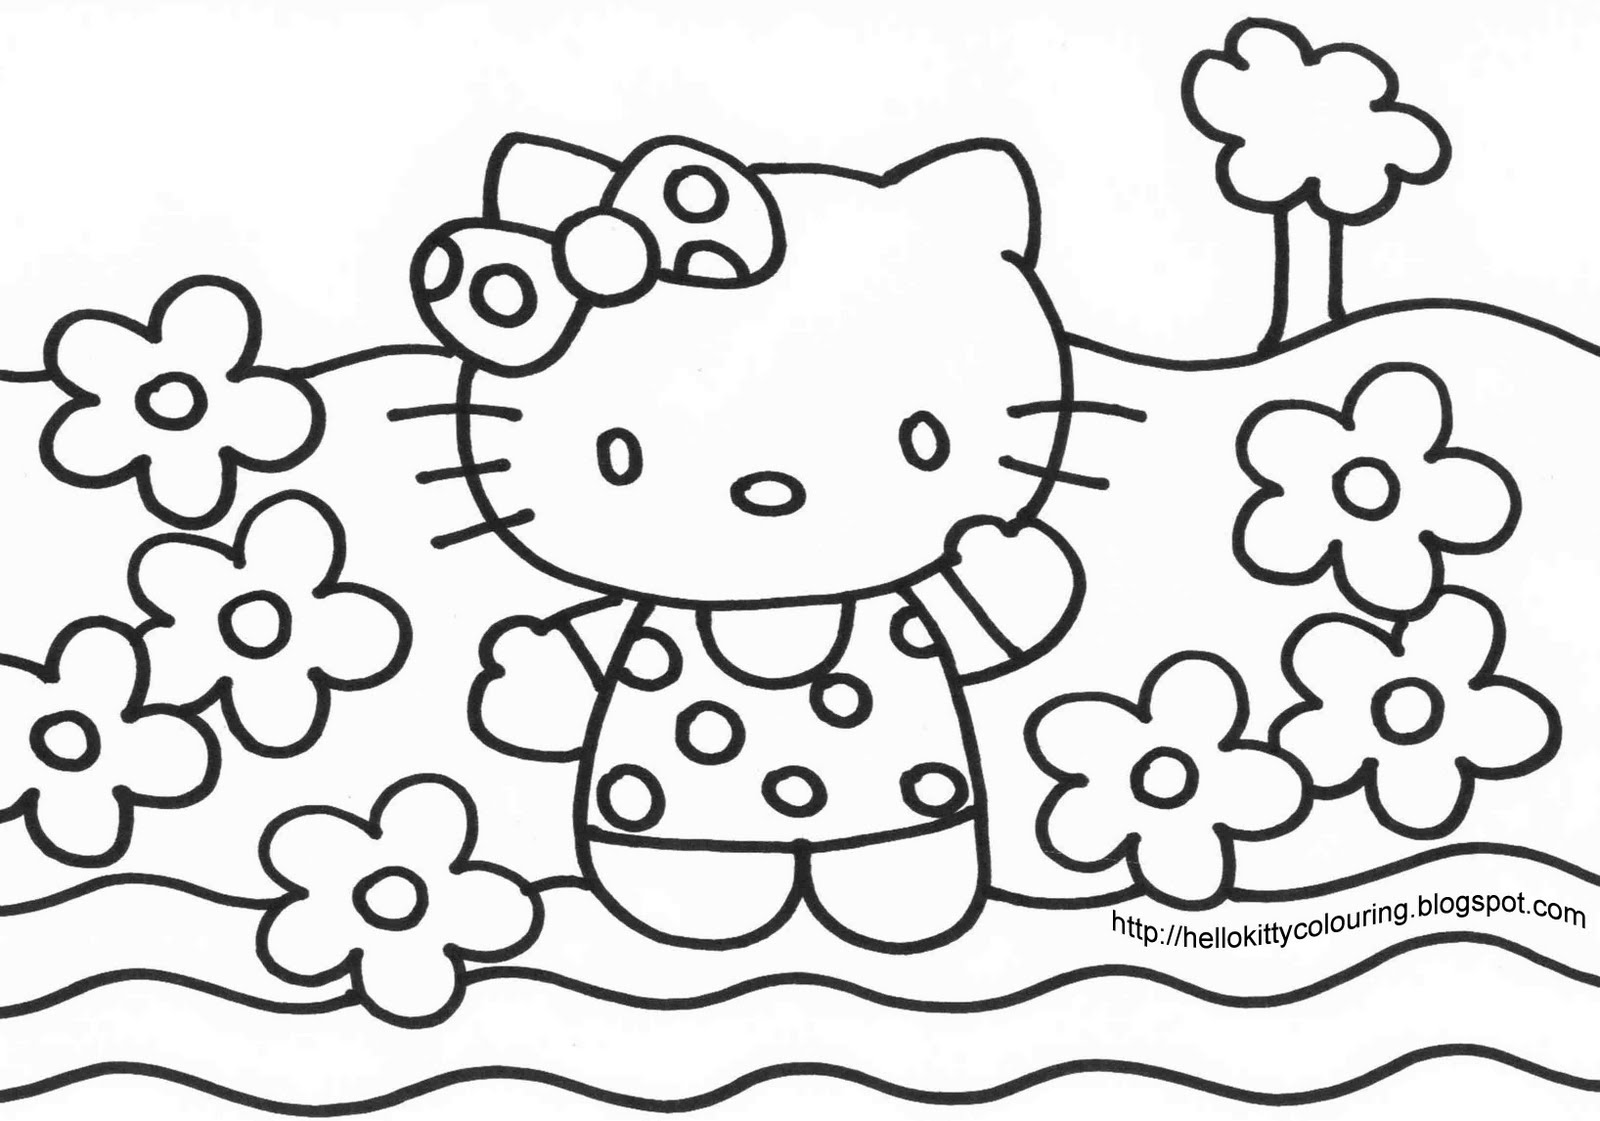 images of hello kitty coloring pages top 75 free printable hello kitty coloring pages online kitty images coloring of hello pages